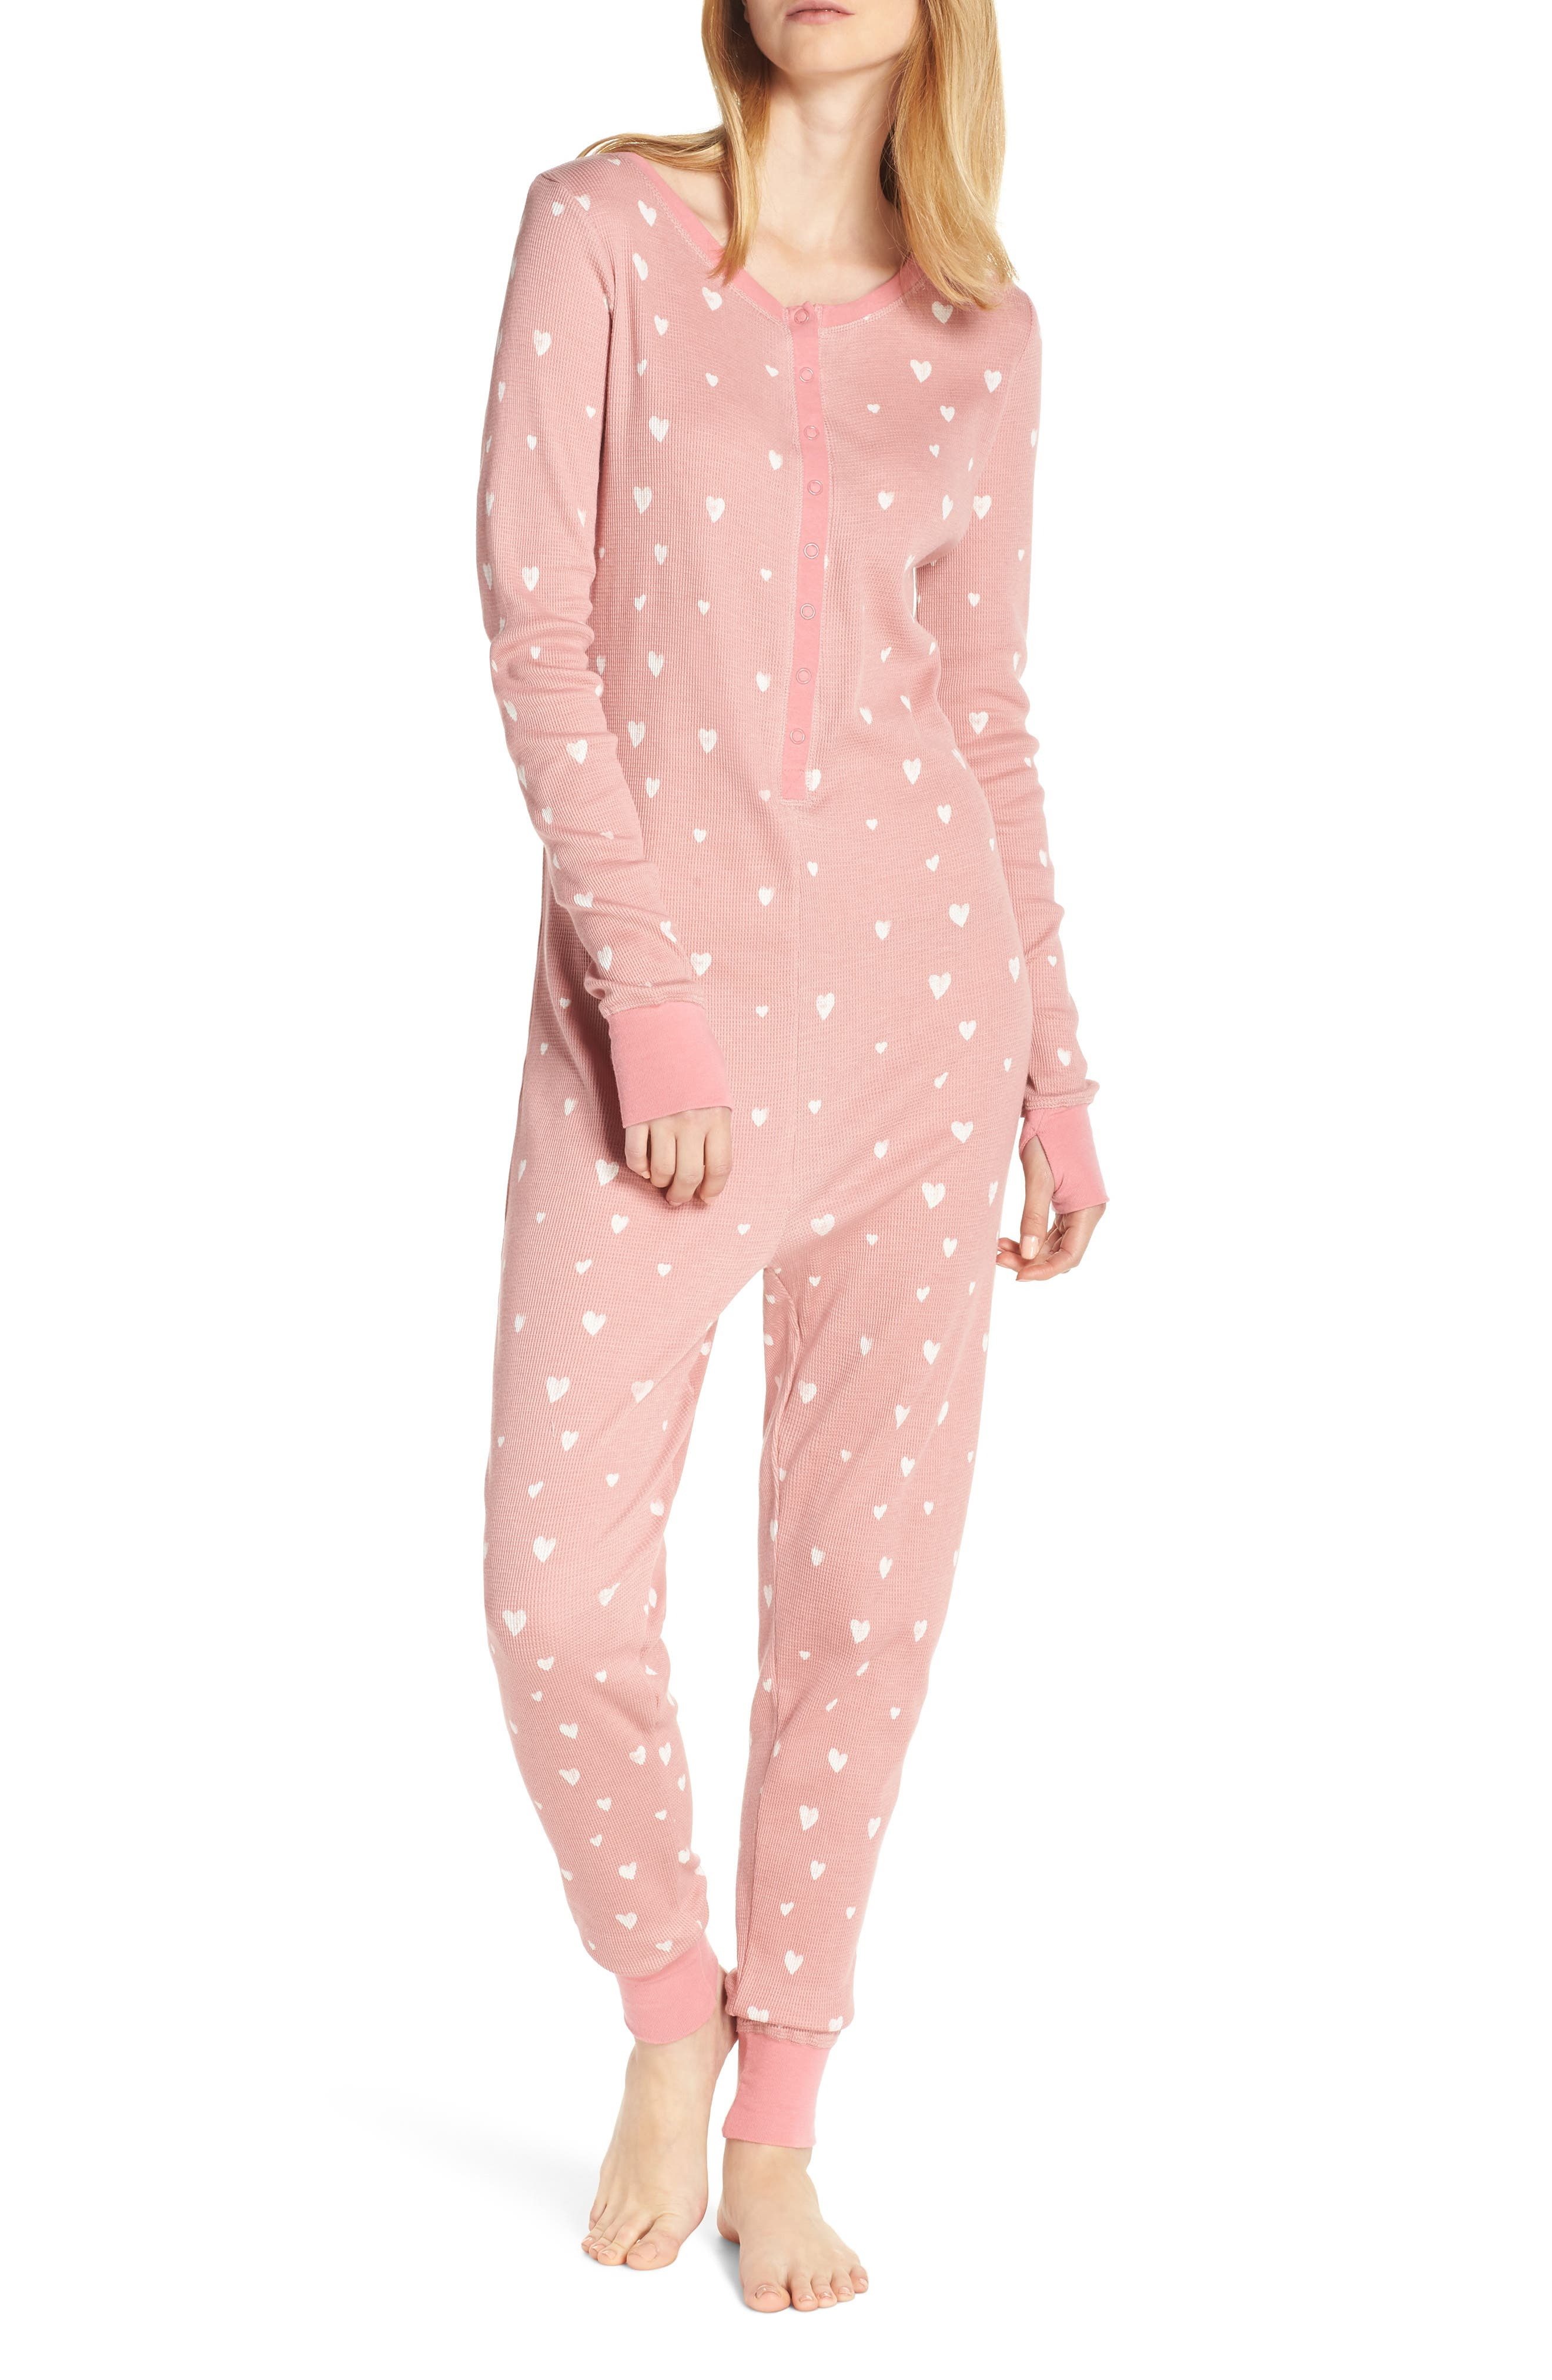 Retrospective Co. Thermal Pajama Jumpsuit, Pink